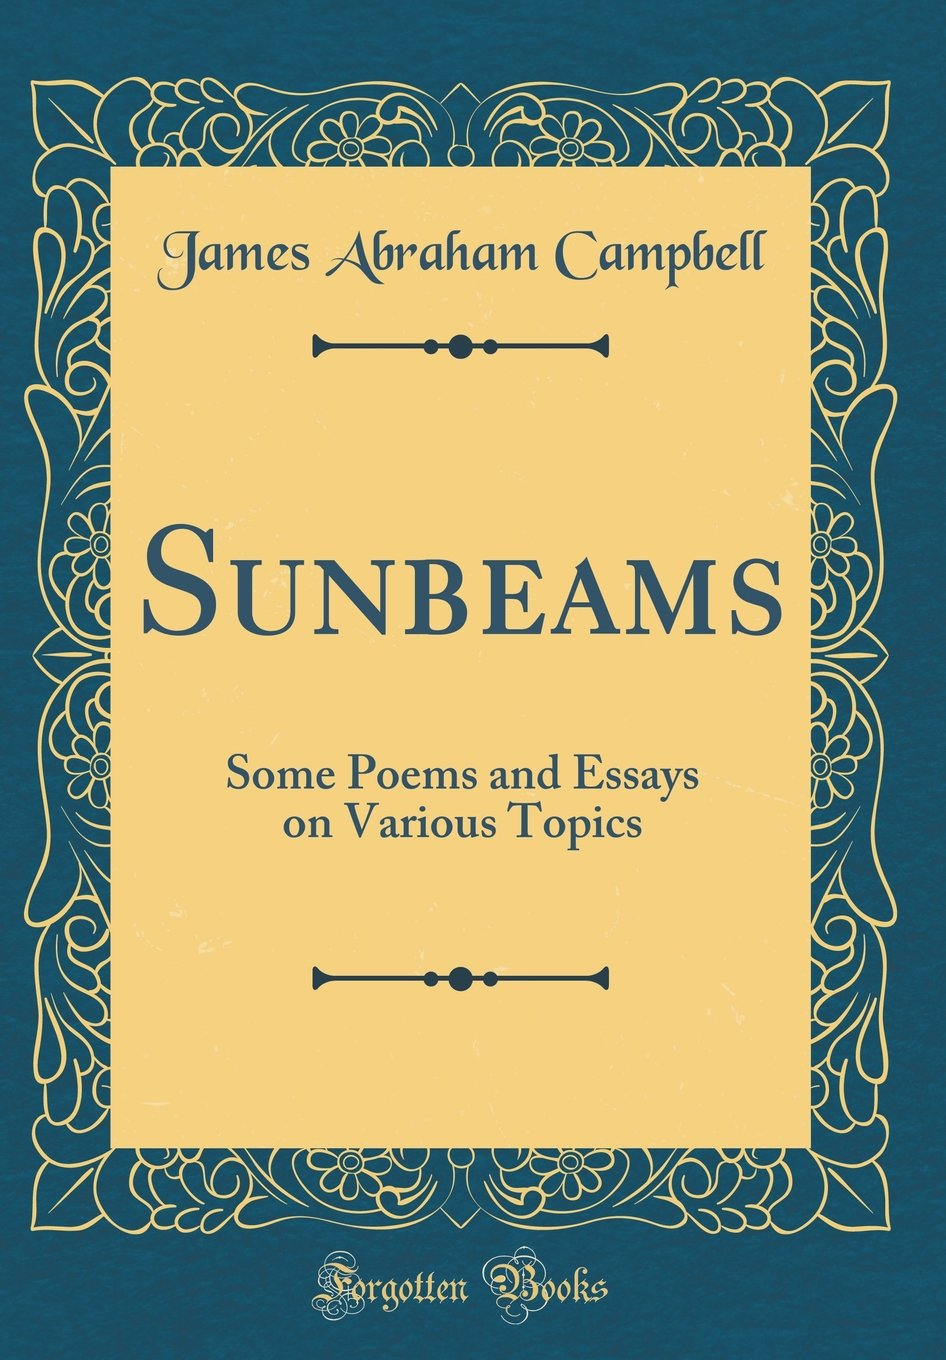 Sunbeams Some Poems And Essays On Various Topics Classic Reprint  Sunbeams Some Poems And Essays On Various Topics Classic Reprint James  Abraham Campbell  Amazoncom Books English Essays Examples also High School Experience Essay  Political Science Essay